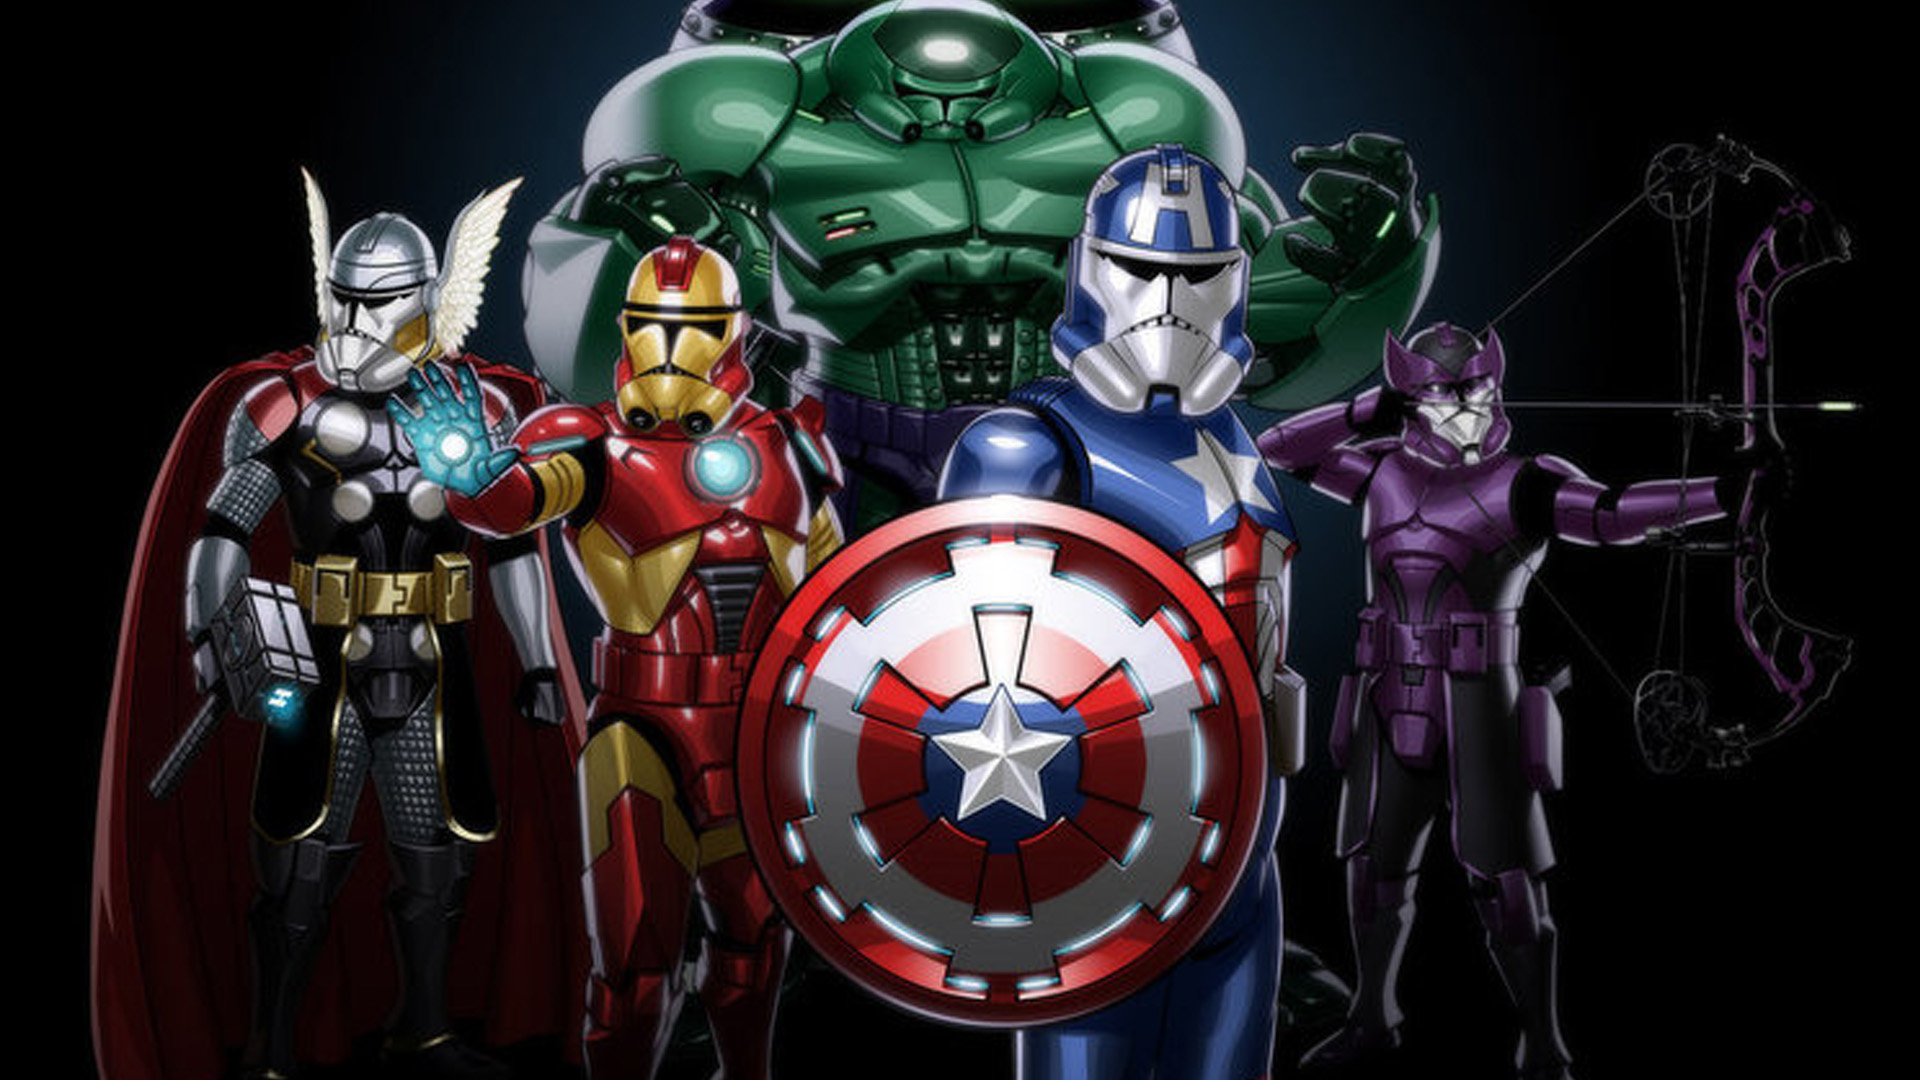 Poster do filme Avengers of Justice: Farce Wars